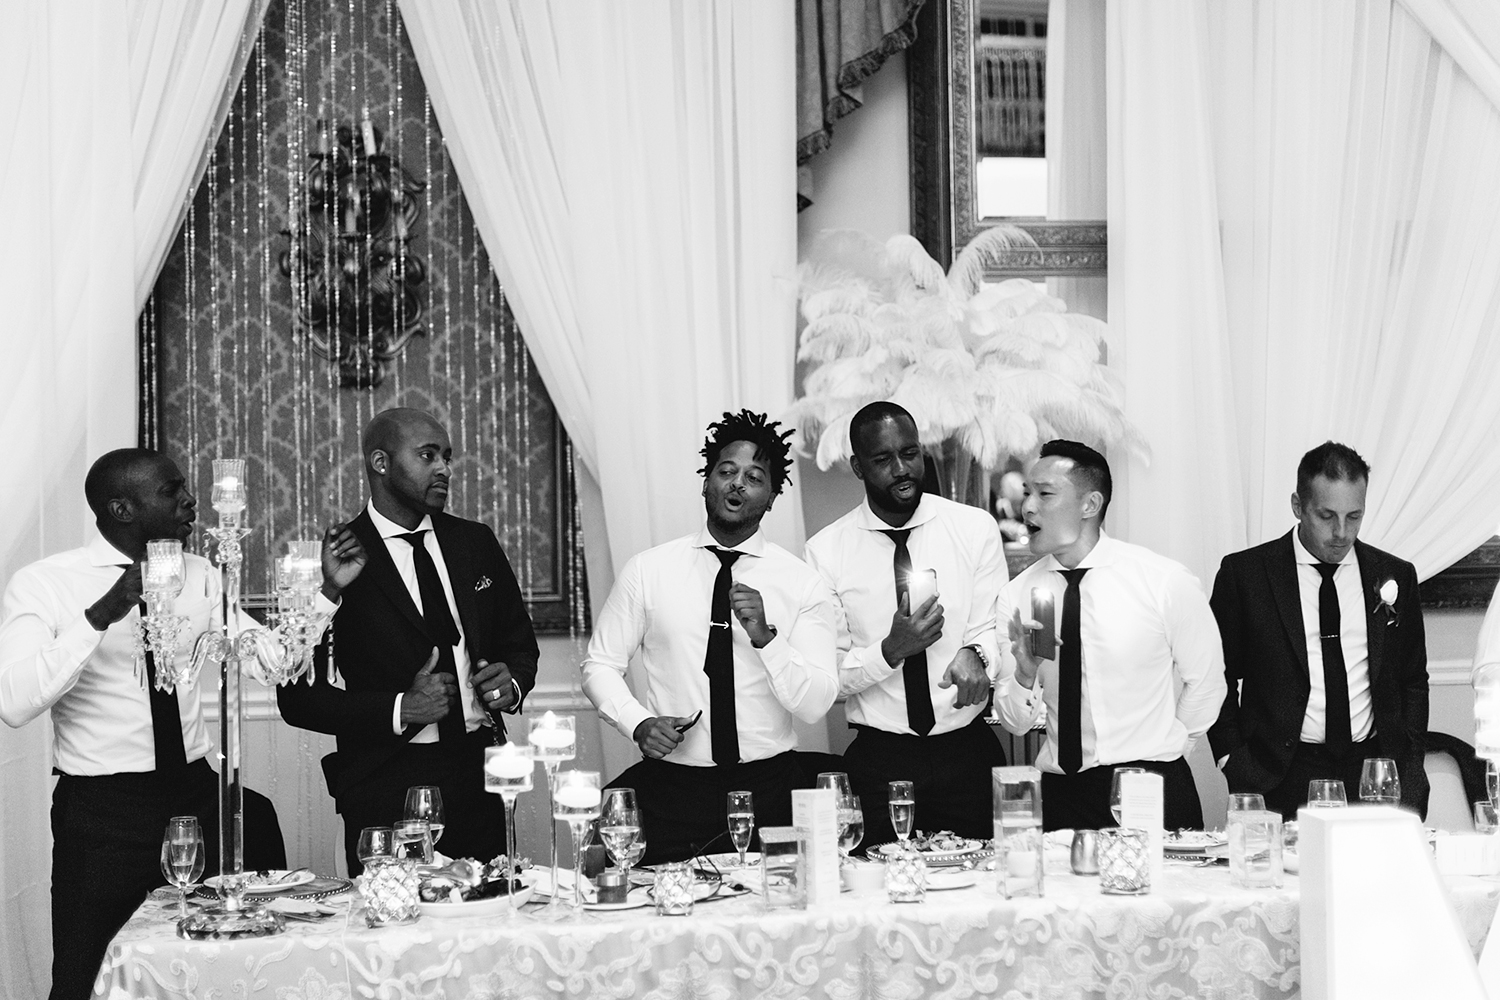 Best-Wedding-Venues-Toronto-Liberty-Grande-vintage-wedding-photography-toronto-bride-and-groom-wedding-photographer-reception-mother-son-dance-emotional-mom-groomsmen-singing-along-bw.jpg